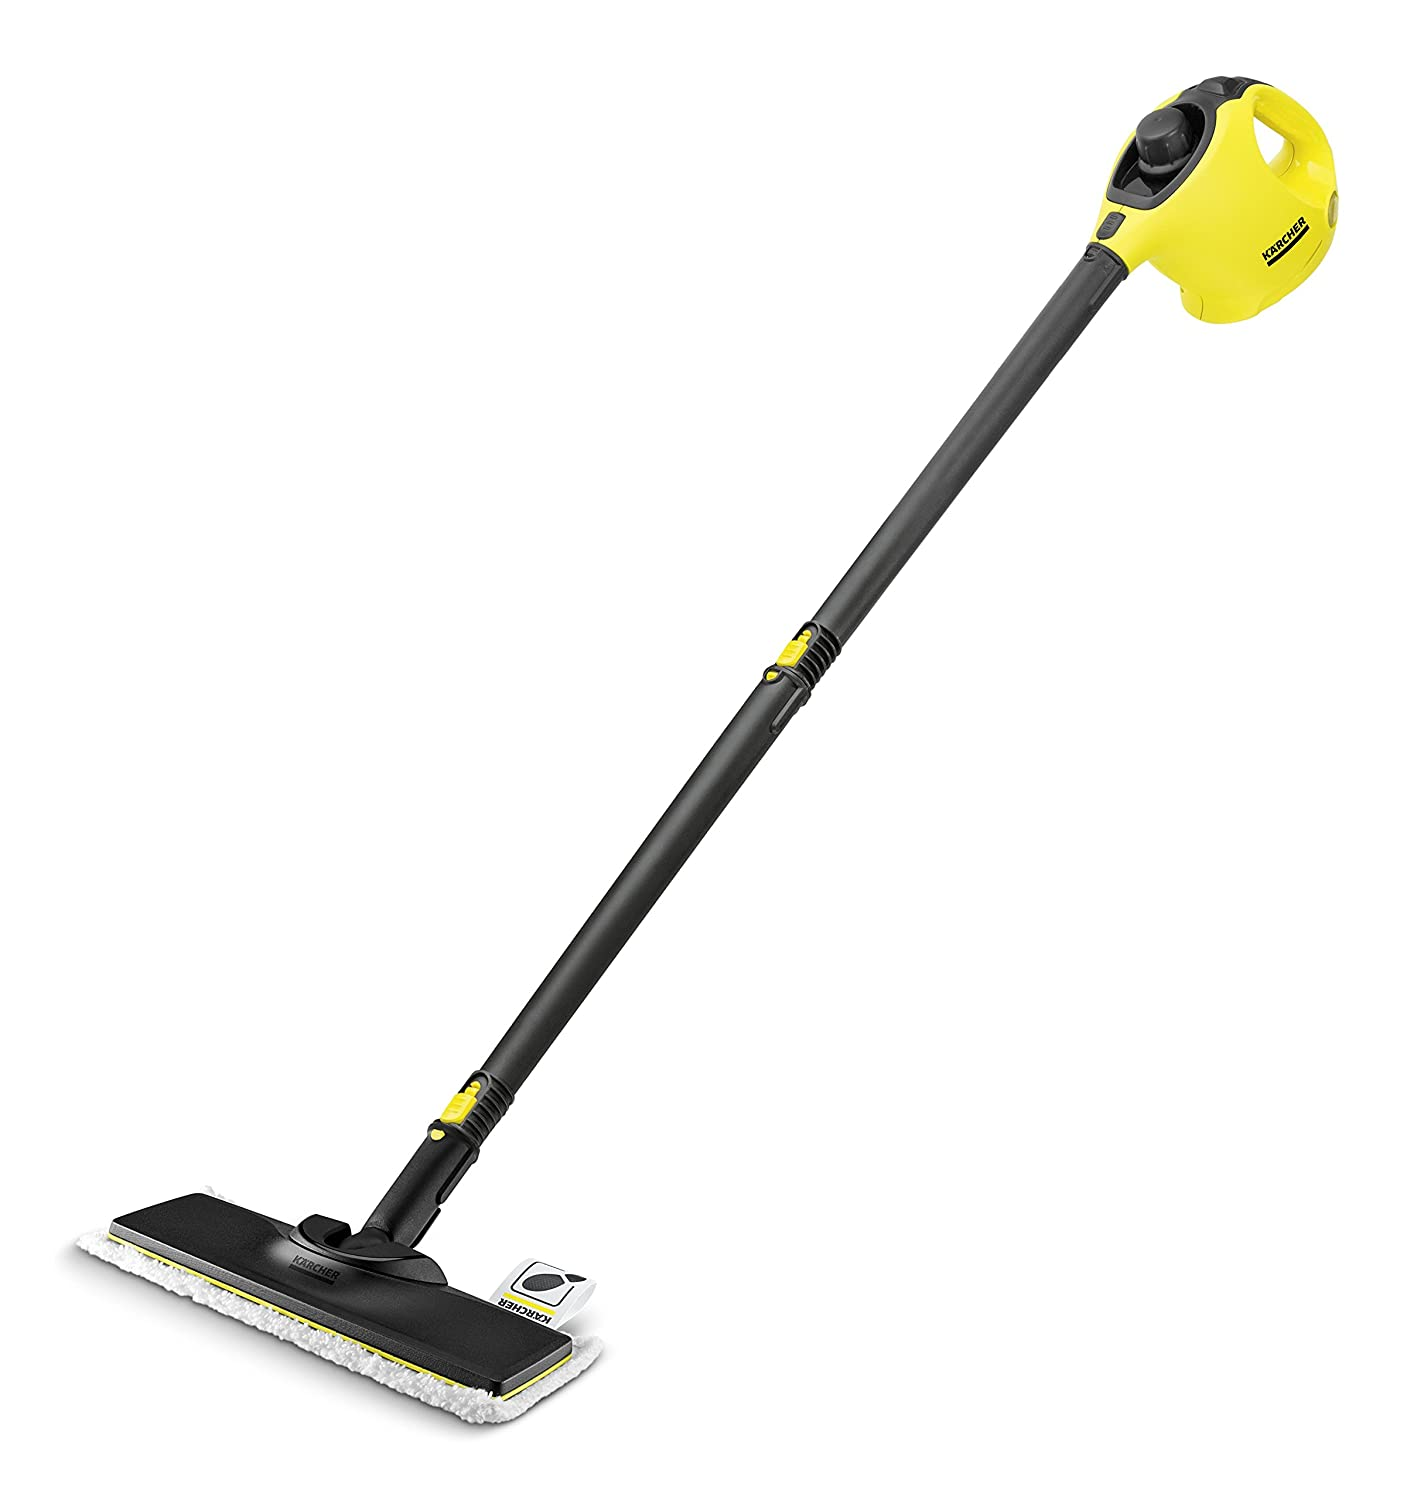 Kärcher 1.516-334.0 EasyFix Steam Cleaner